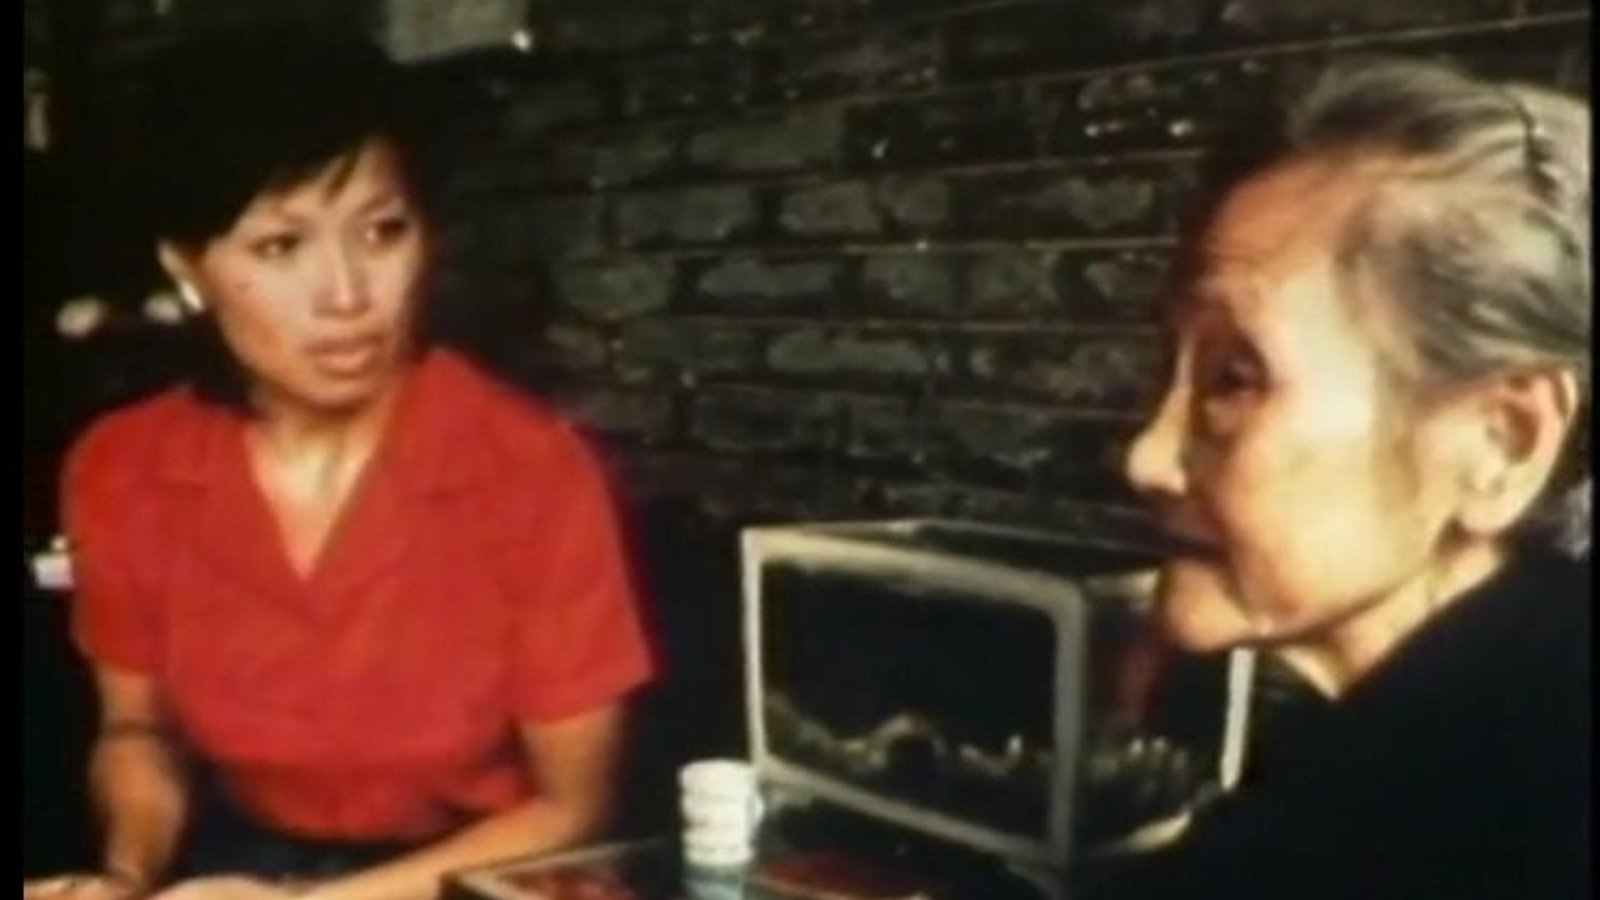 China: Land of My Father - A Search for Family Roots in China